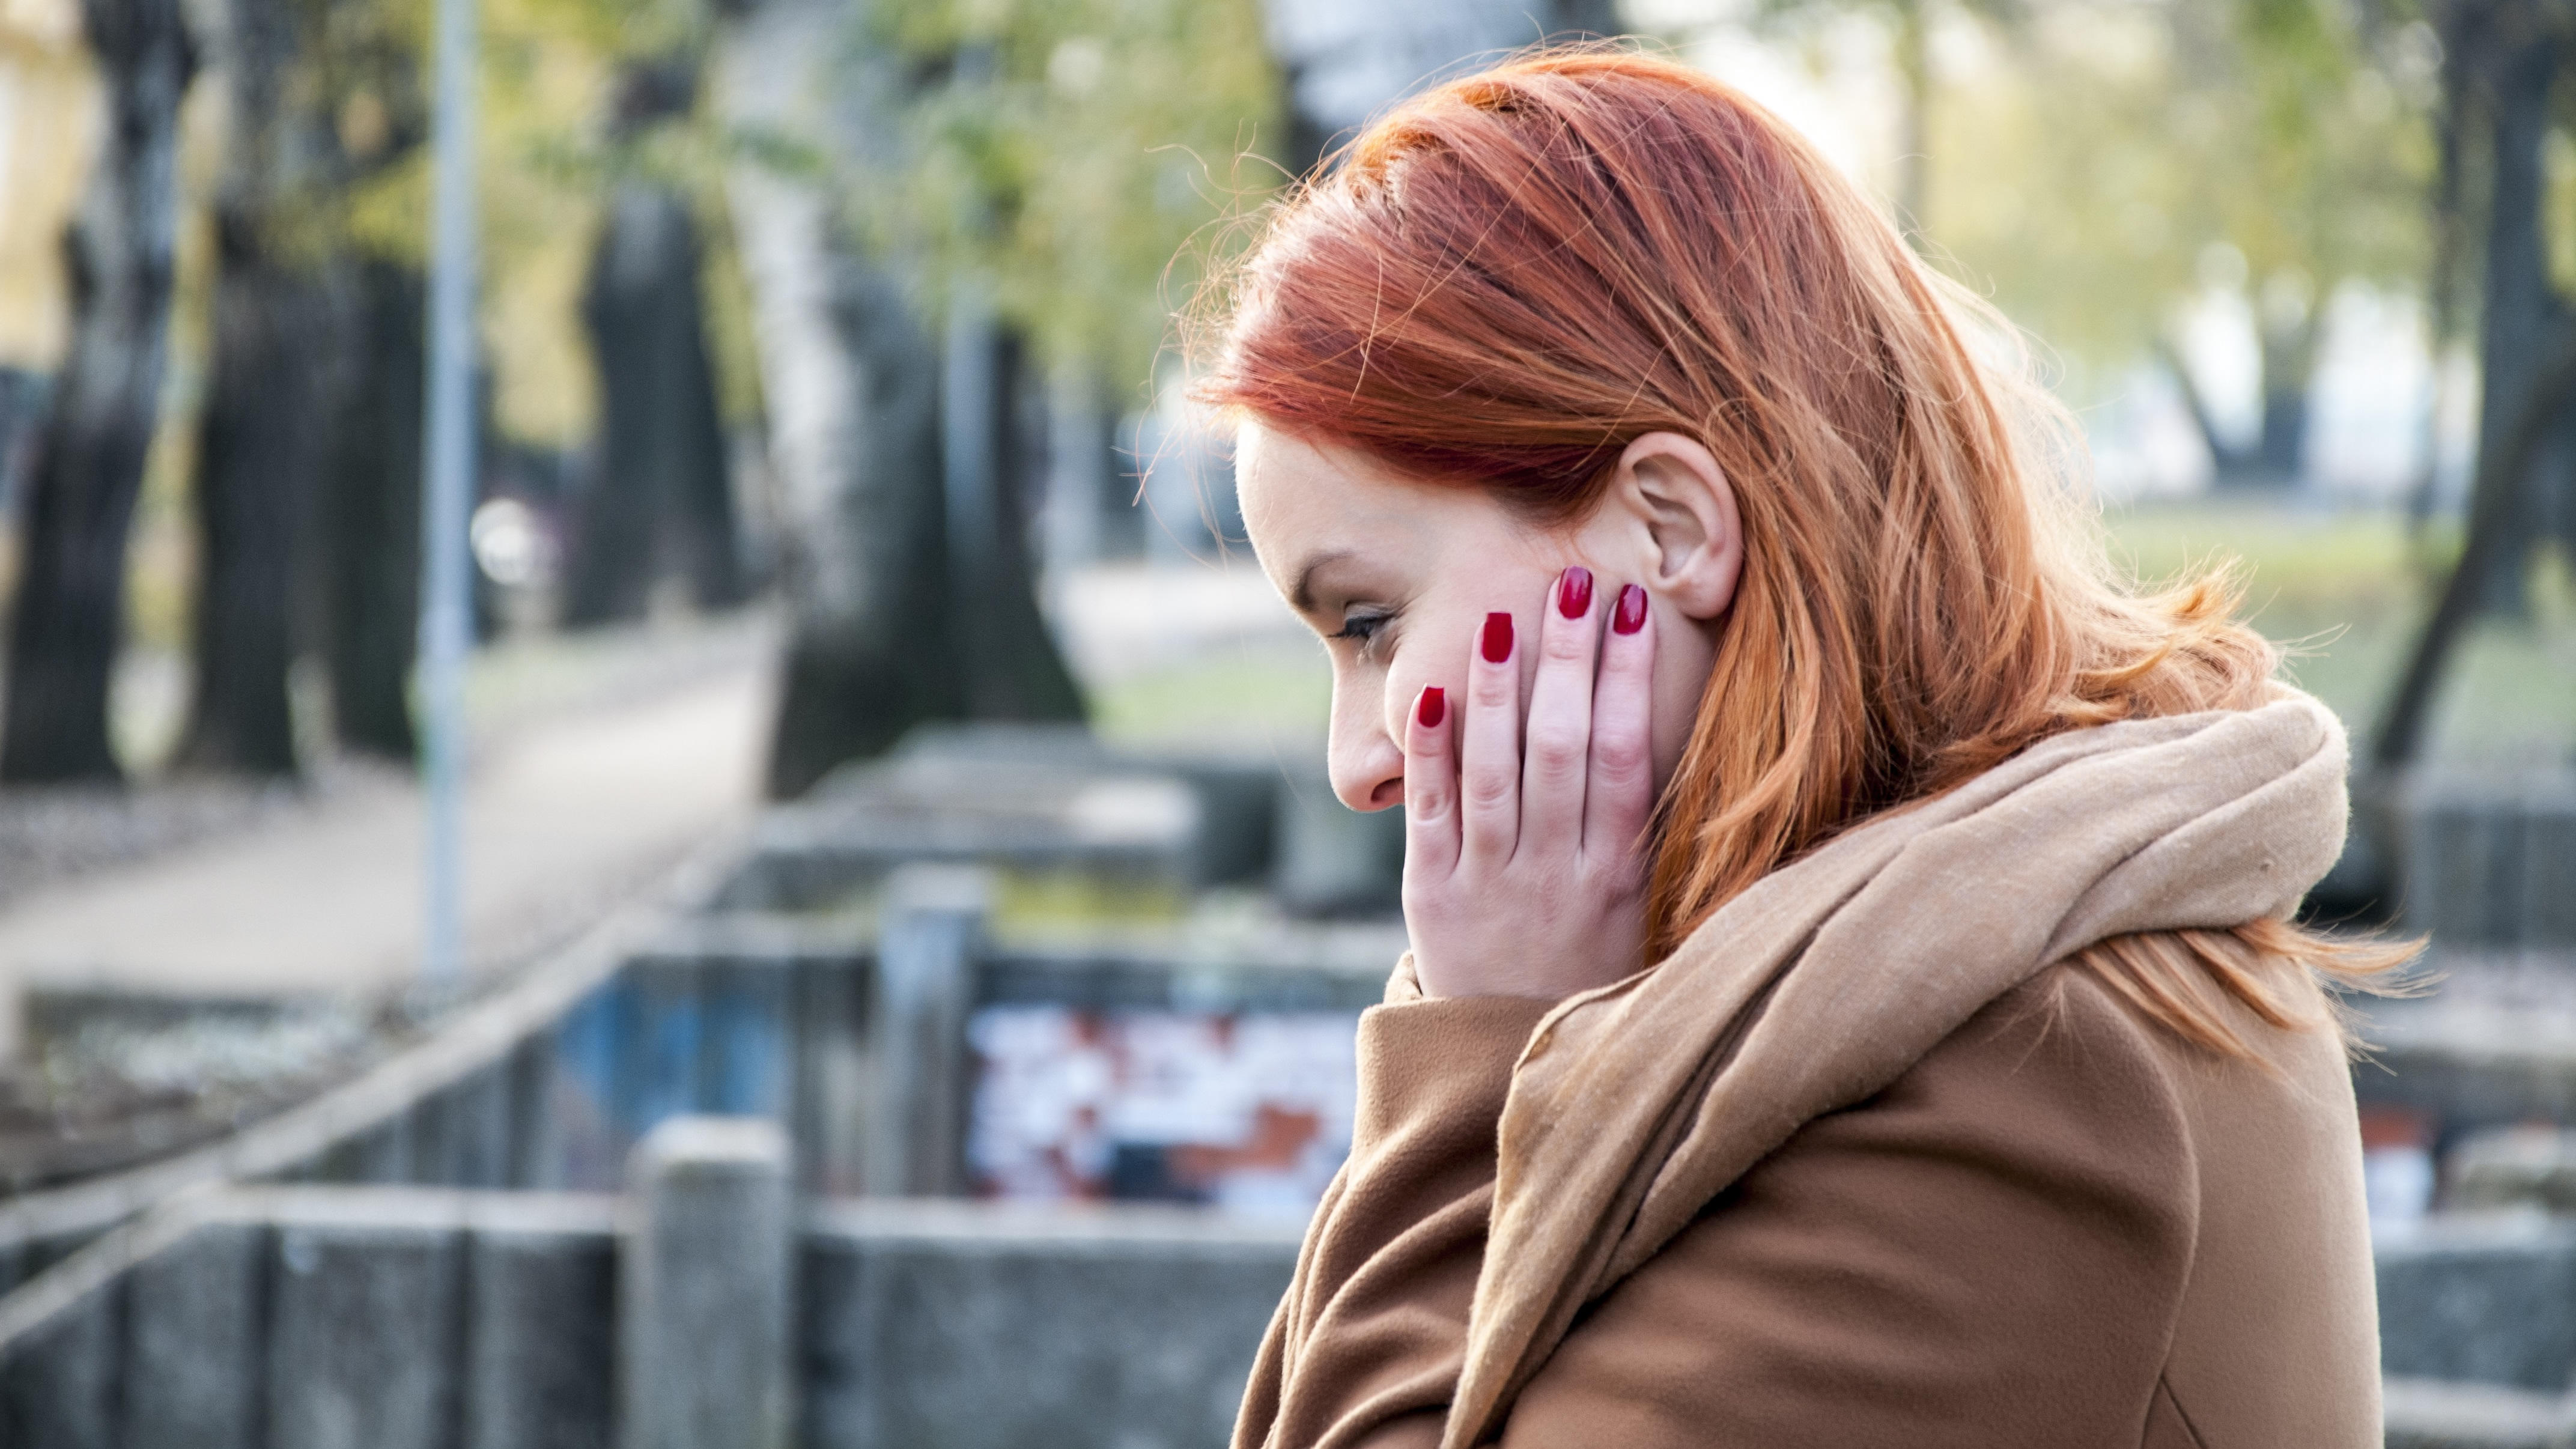 Profile of woman standing outside looking down pensively